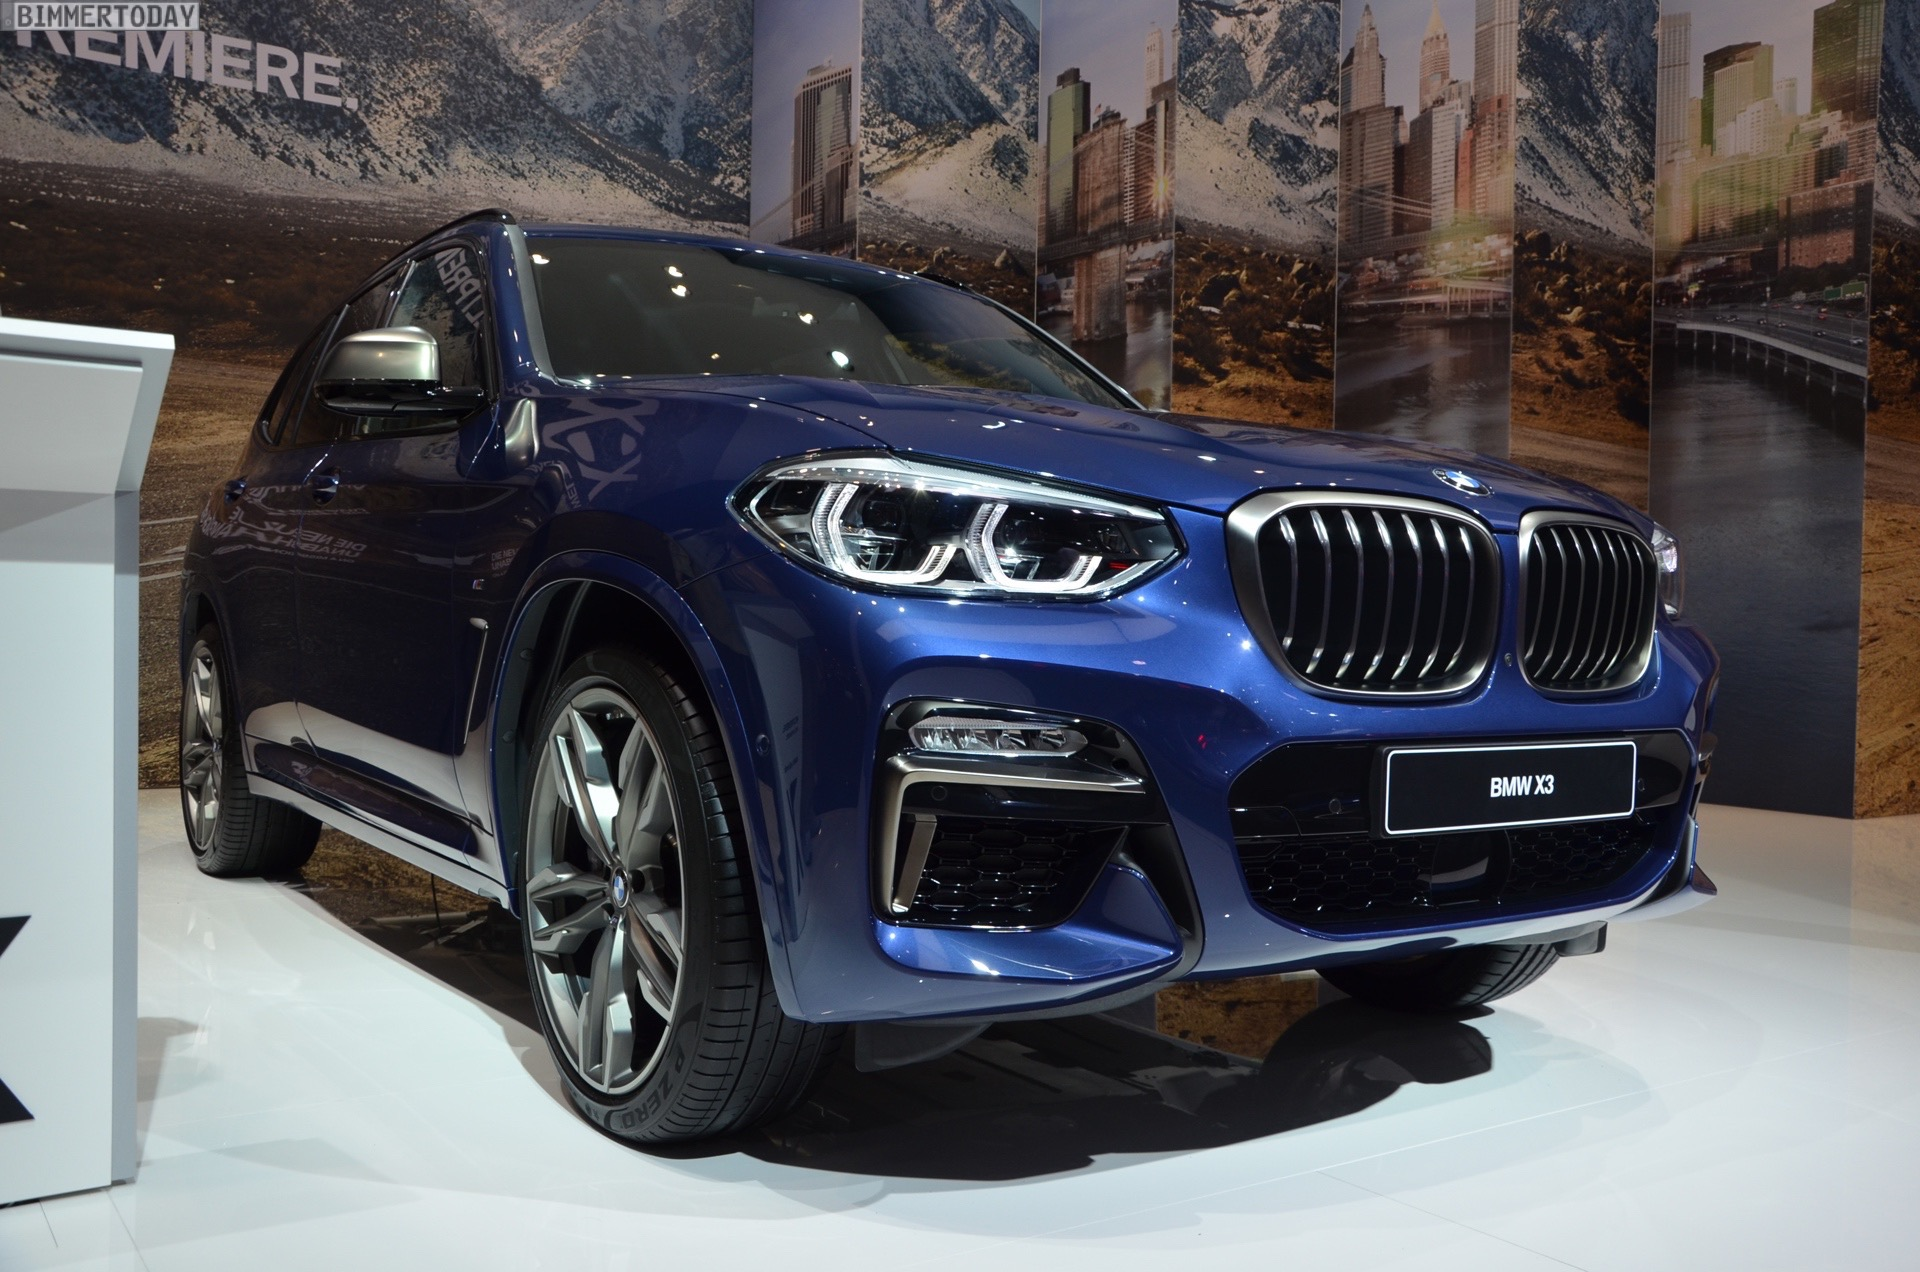 Iaa 2017 Bmw X3 M40i G01 In Phytonic Blue Live Fotos